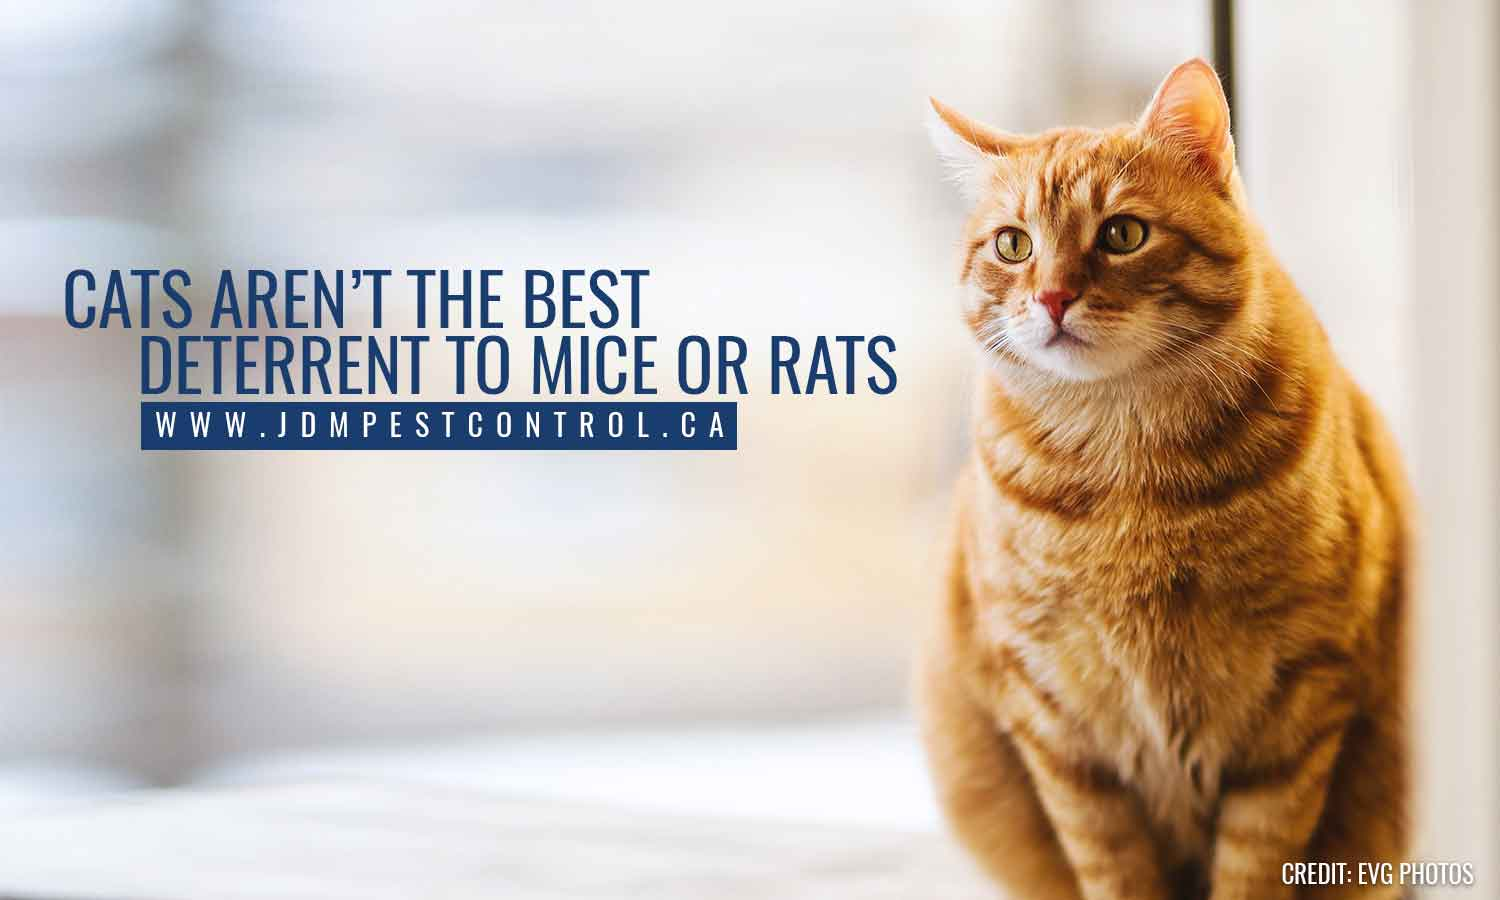 Cats aren't the best deterrent to mice or rats